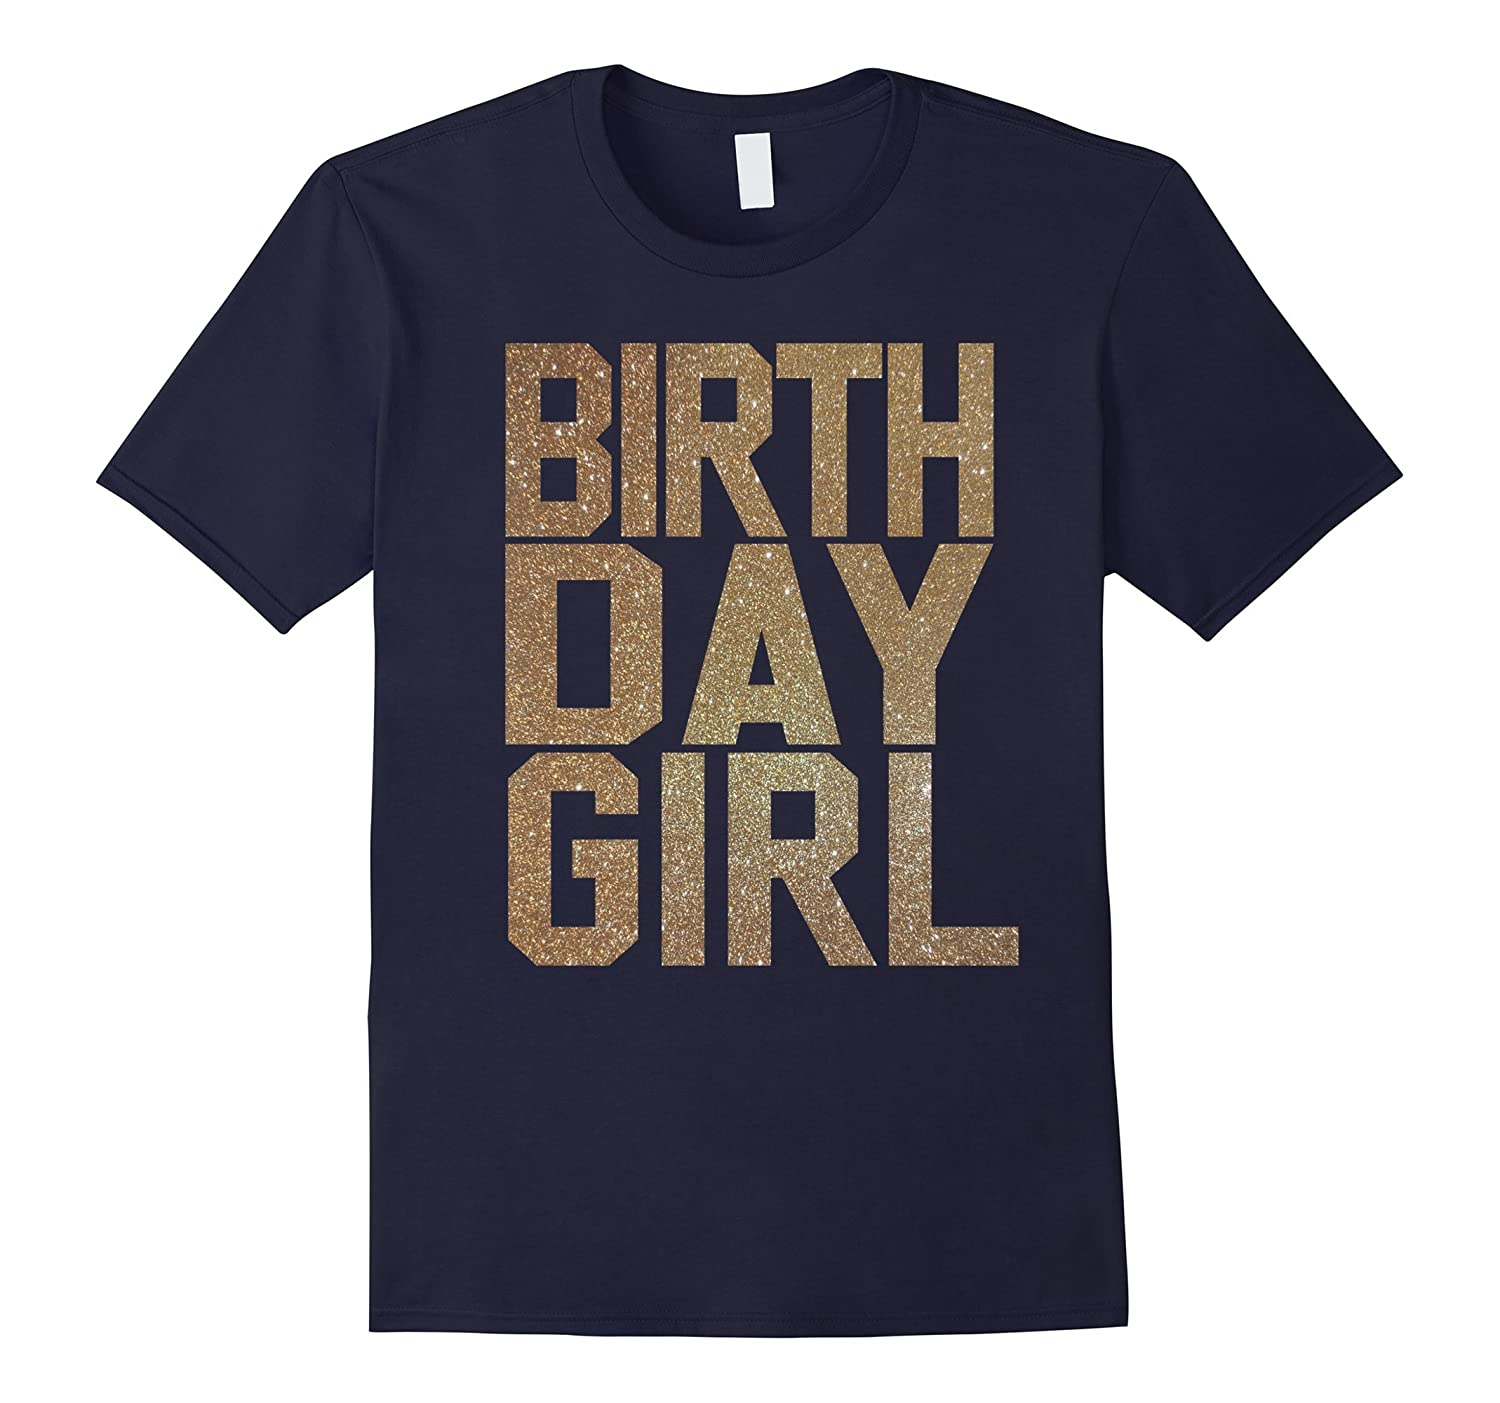 Birthday Girl Shirt - Gold T-Shirt for Women, Teens, & Girls-BN